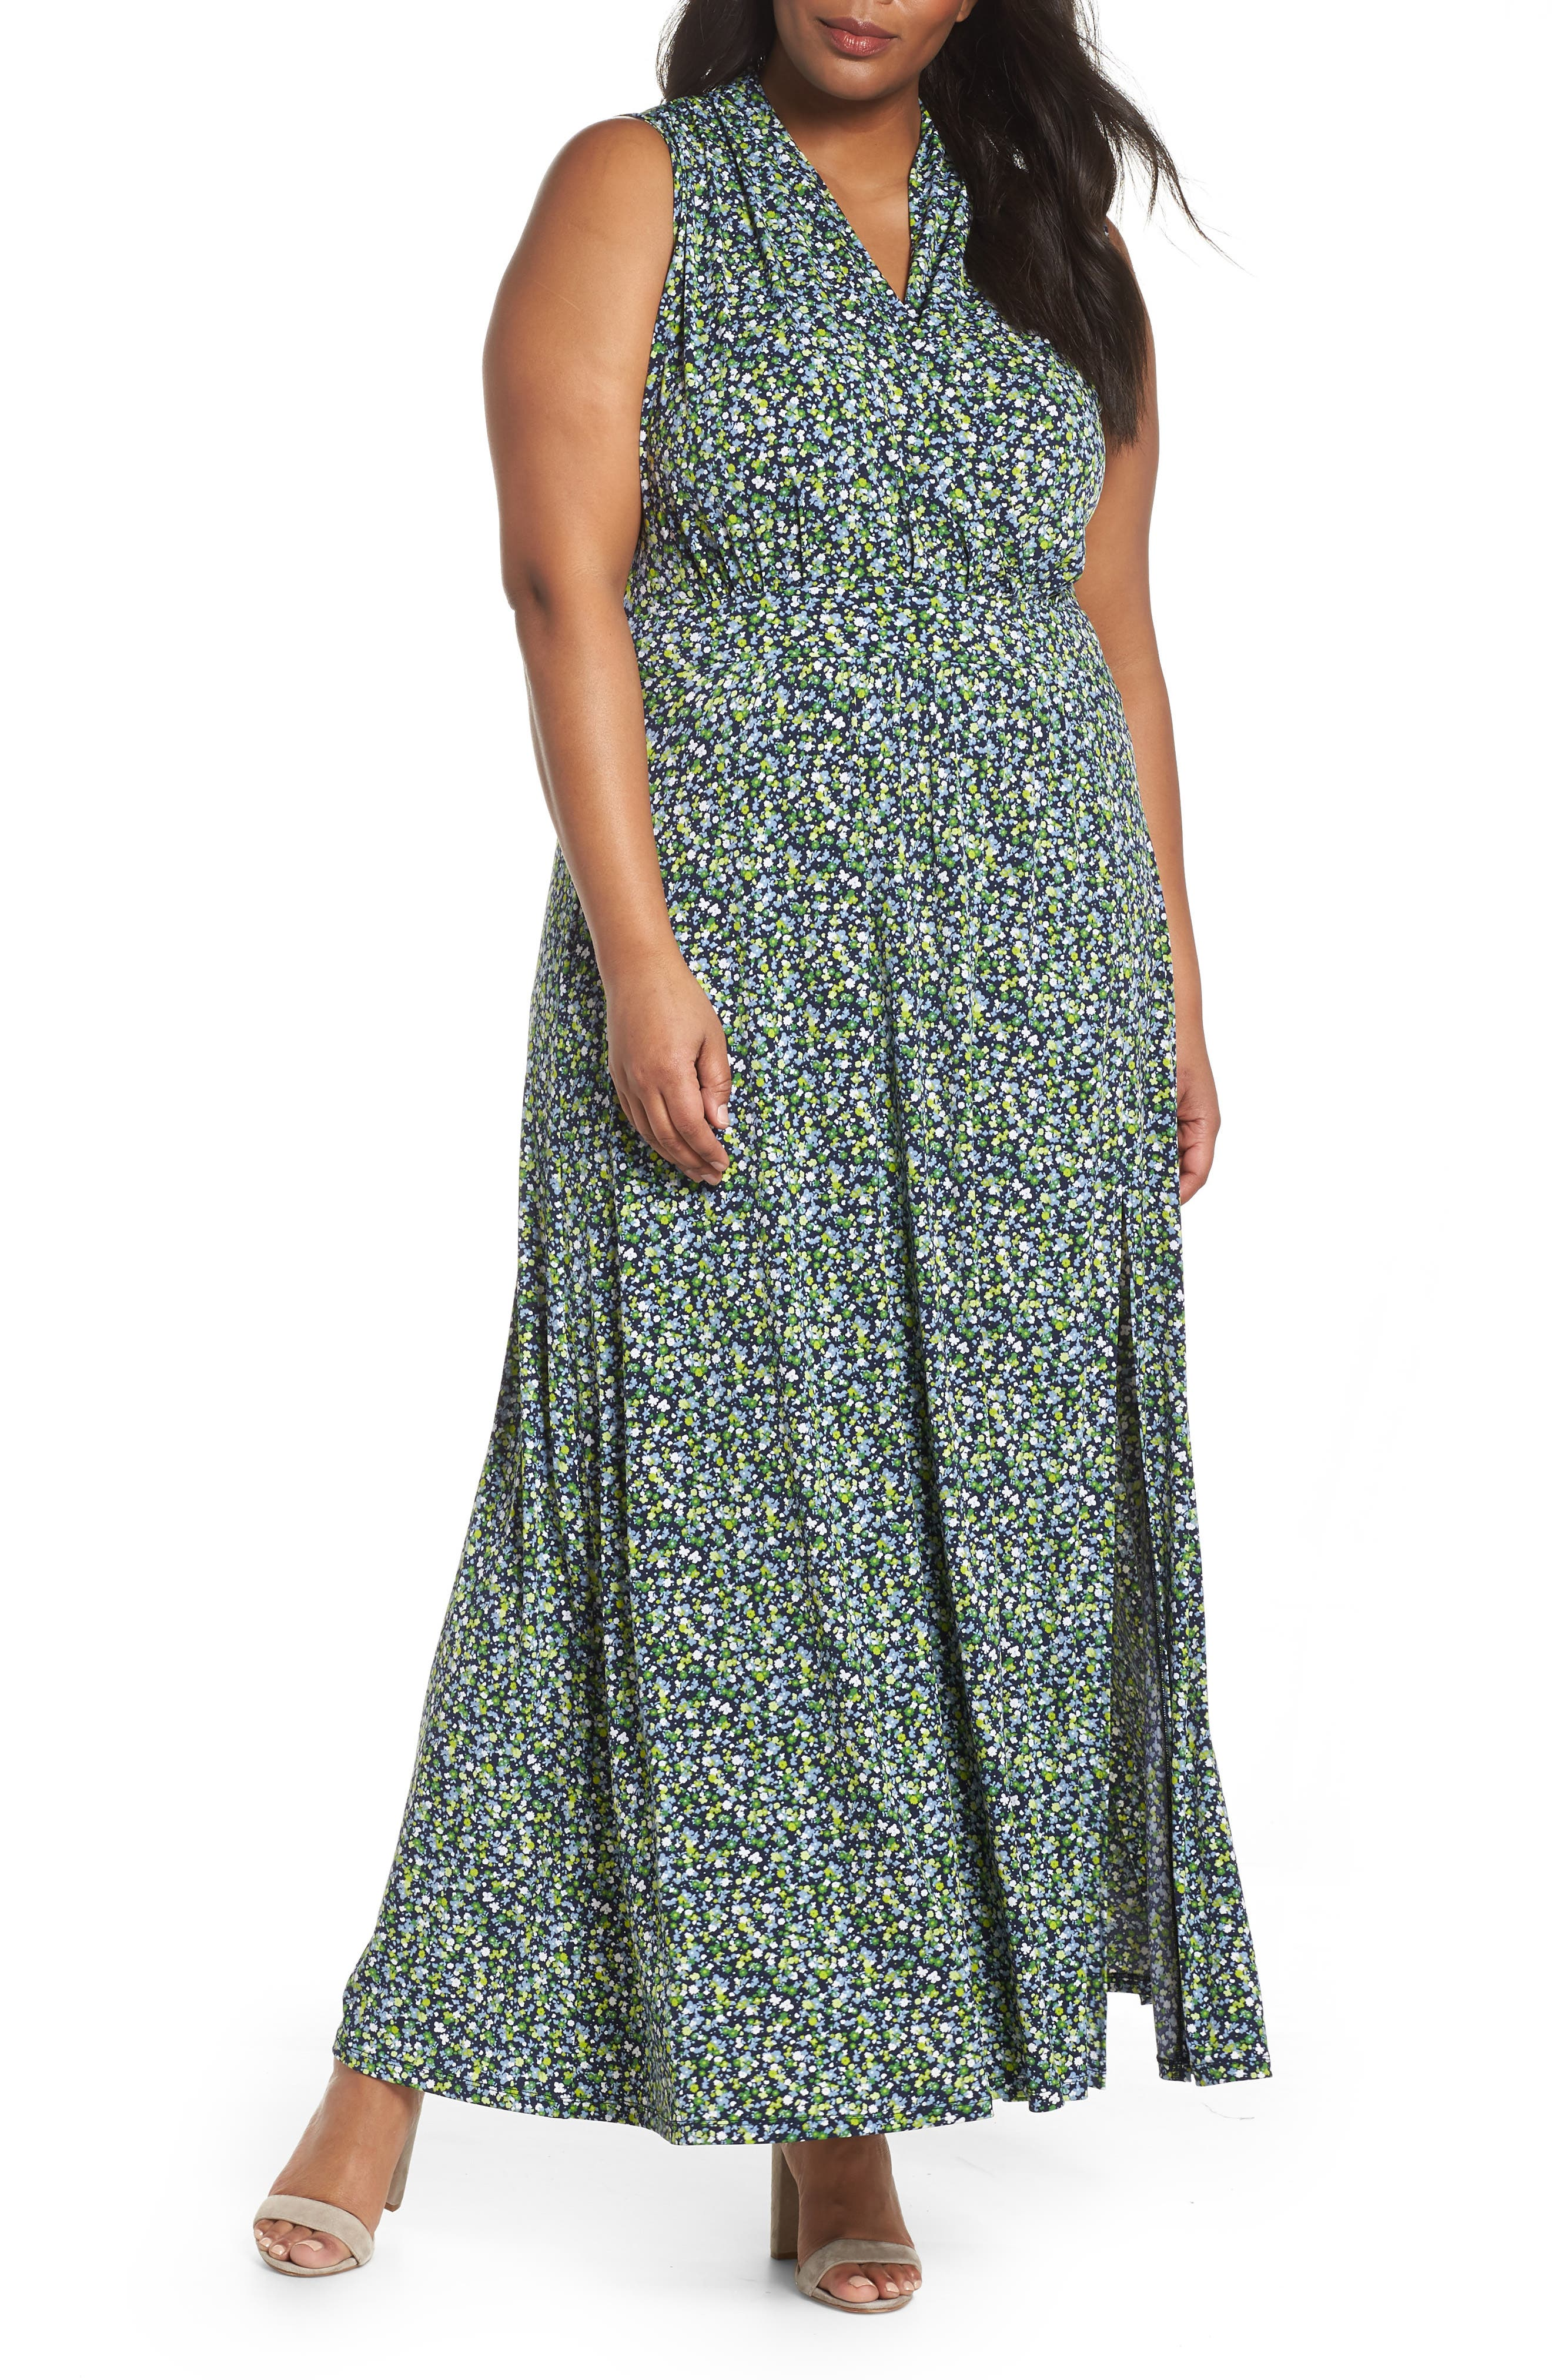 Main Image - MICHAEL Michael Kors Wildflowers Maxi Dress (Plus Size)